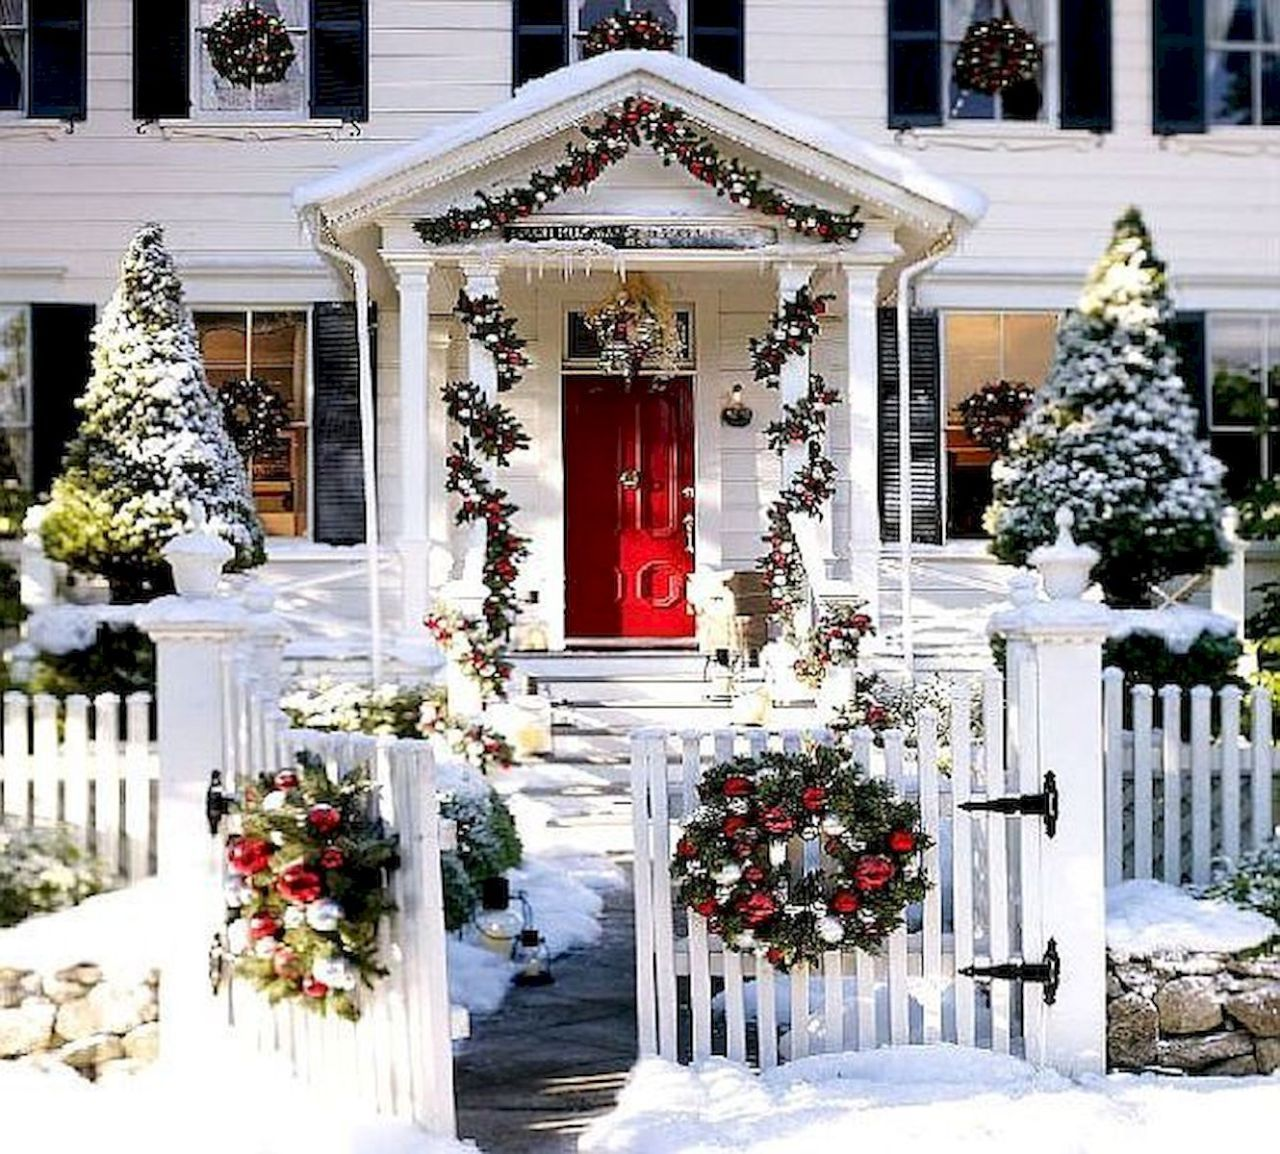 Outdoor porch christmas decorations   Amazing Outdoor Christmas Decor Ideas   Xmas  Pinterest